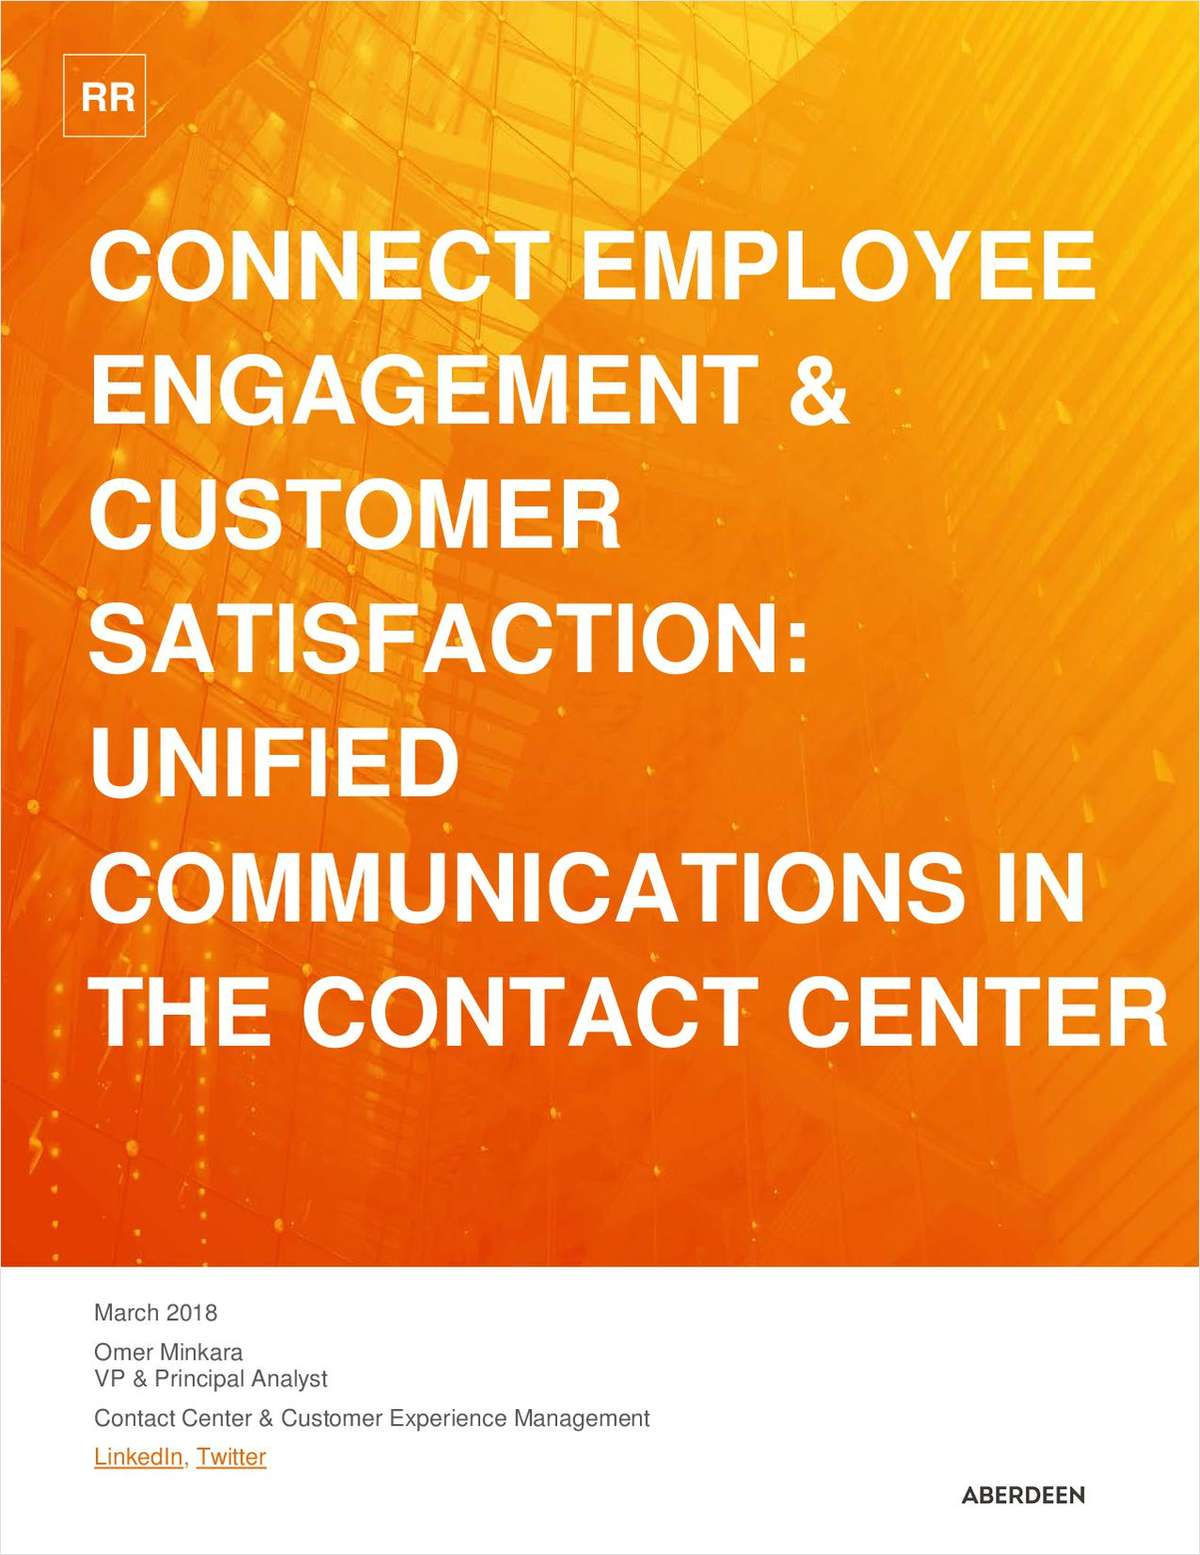 Maximize Contact Center Performance With Unified Communications